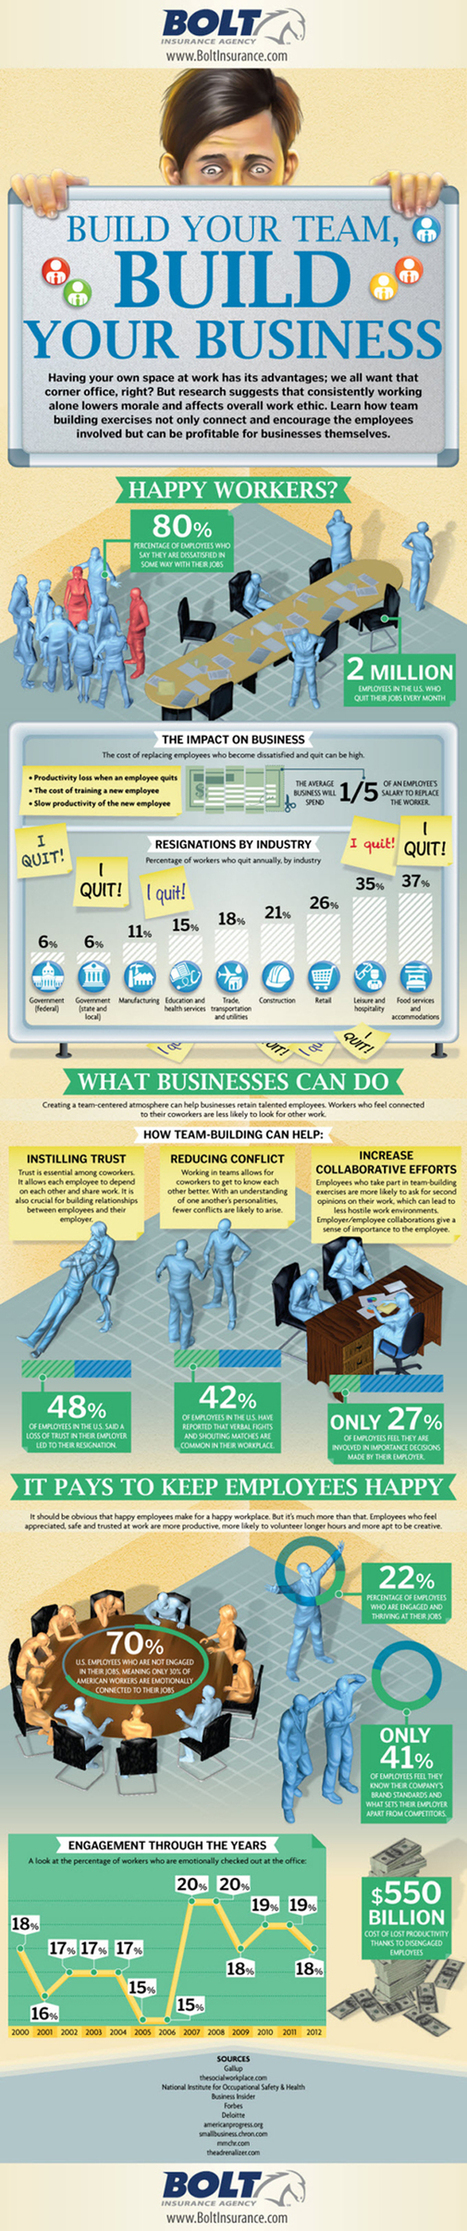 Team Building Leads To Better Business [Infographic] | cohesion d'equipe team building | Scoop.it